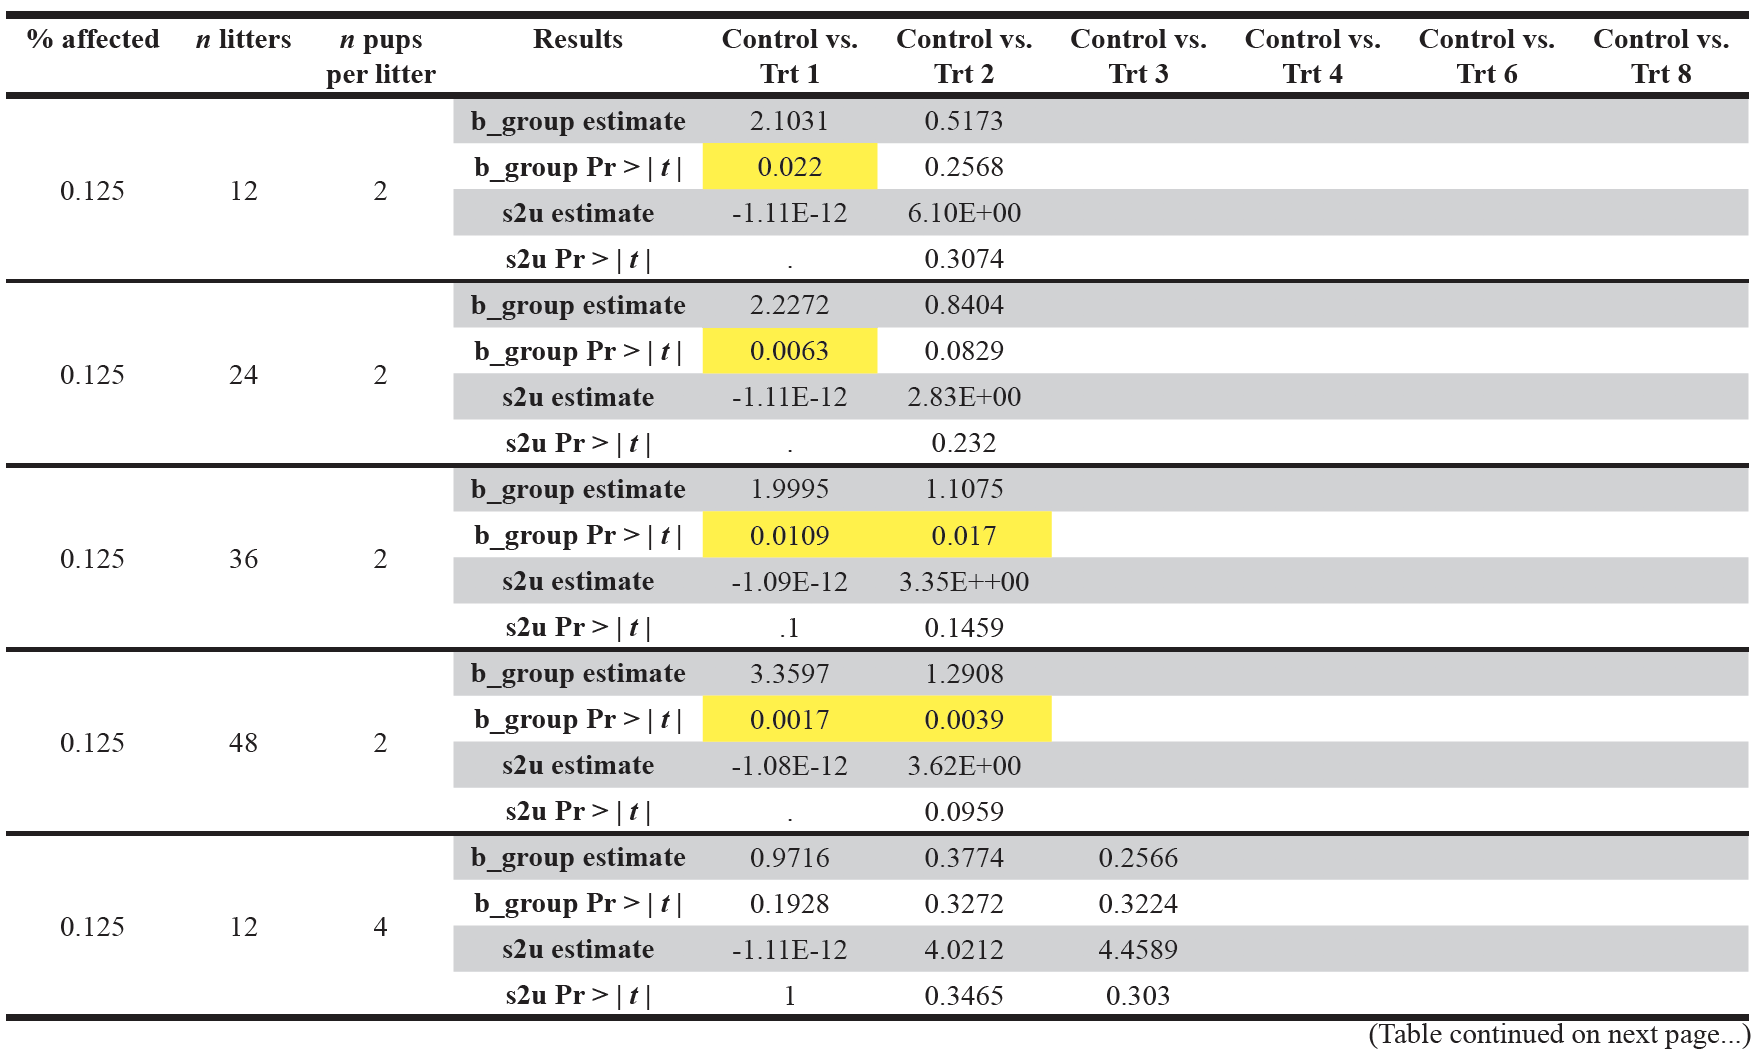 Table 7. Display of the model summary results for the hypothetical datasets.  The significant p-values are highlighted in yellow. s2u refers to the variance of the random effect  u .